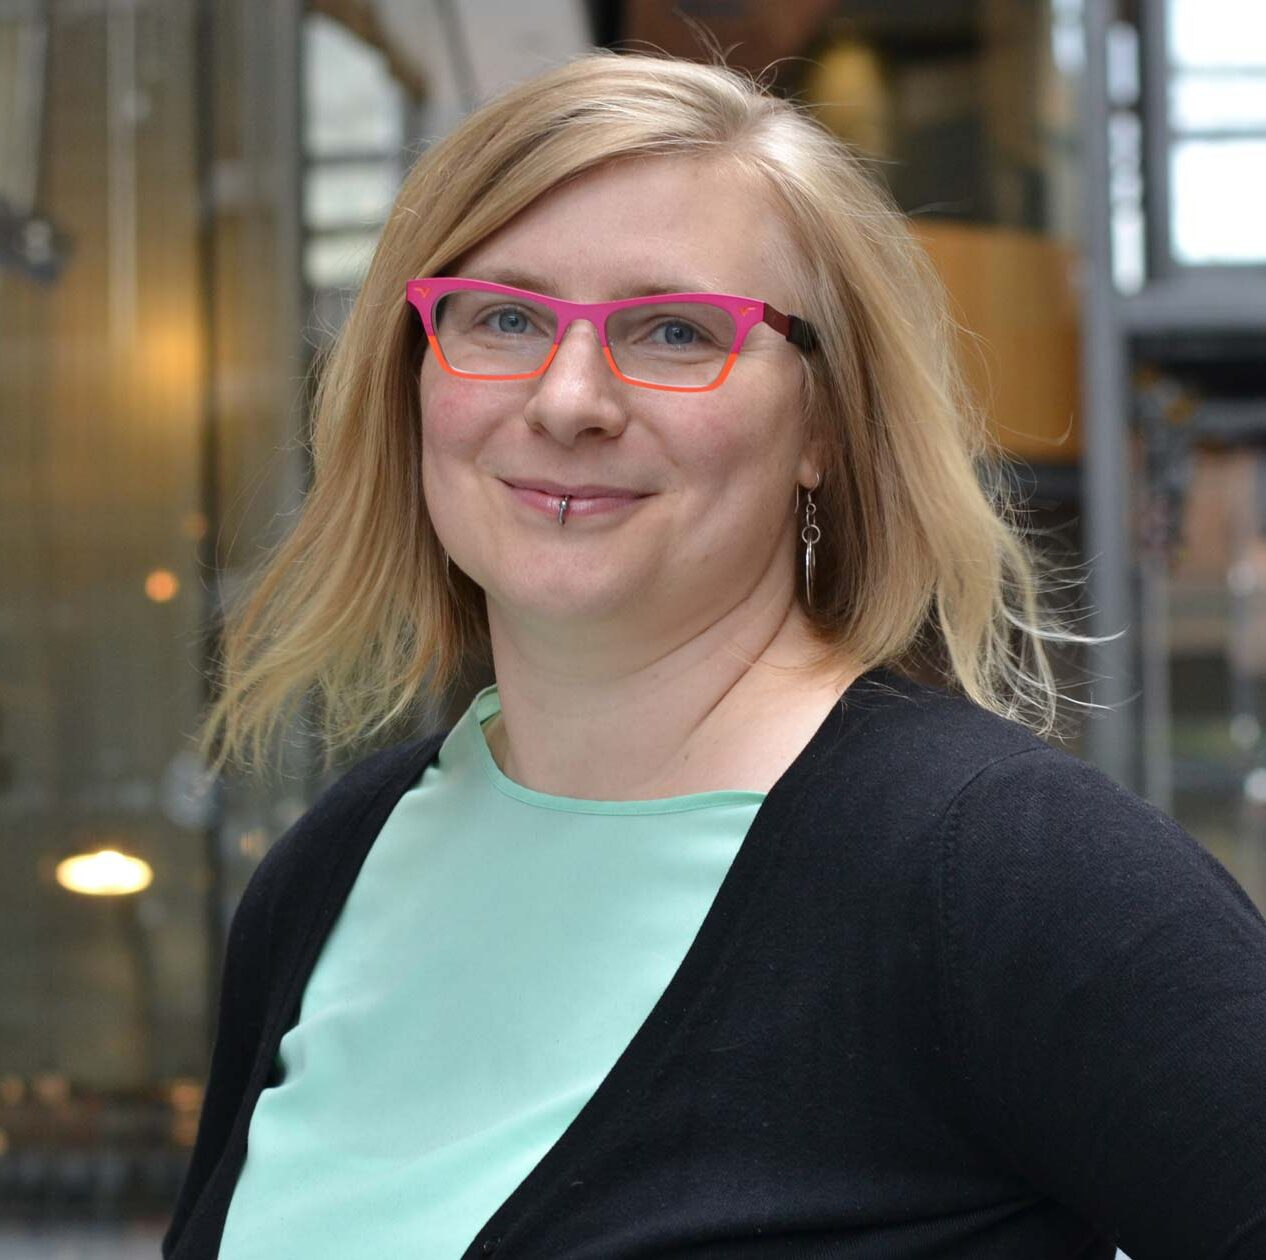 Rebecca Cory: a white woman in her thirties wears a black cardigan over a mint blouse and wears her pink and orang glasses.